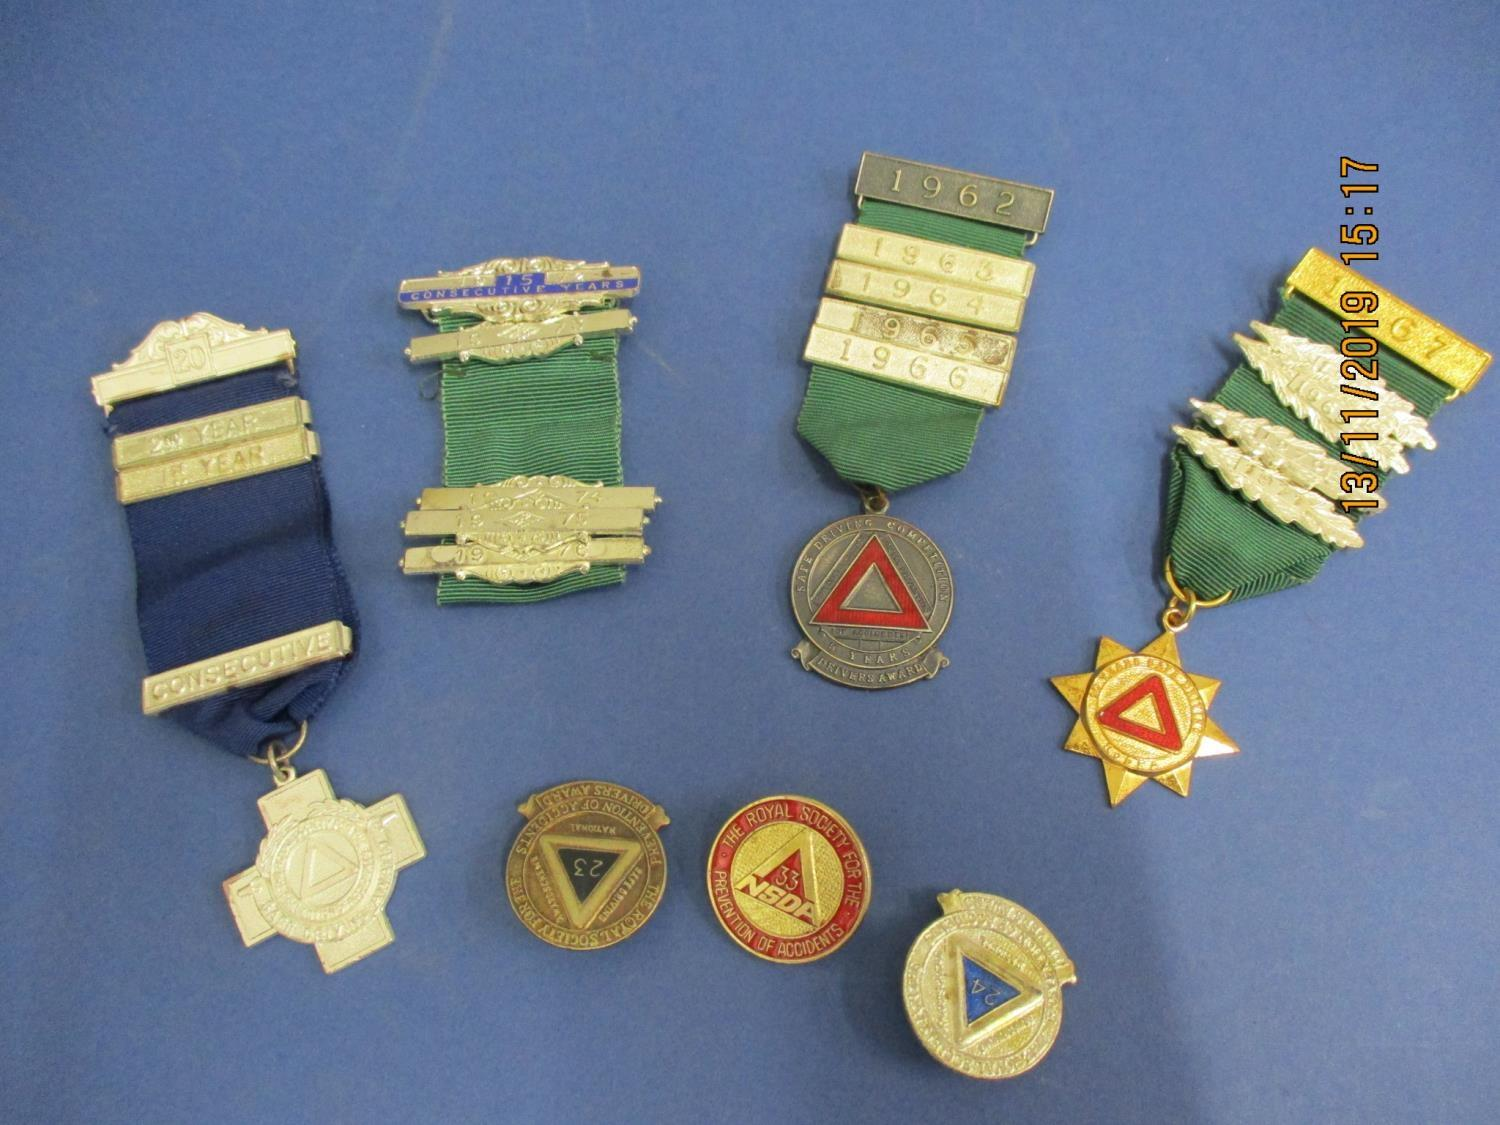 Lot 60 - A small quantity of driving badges and medals with ribbons, circa 1960